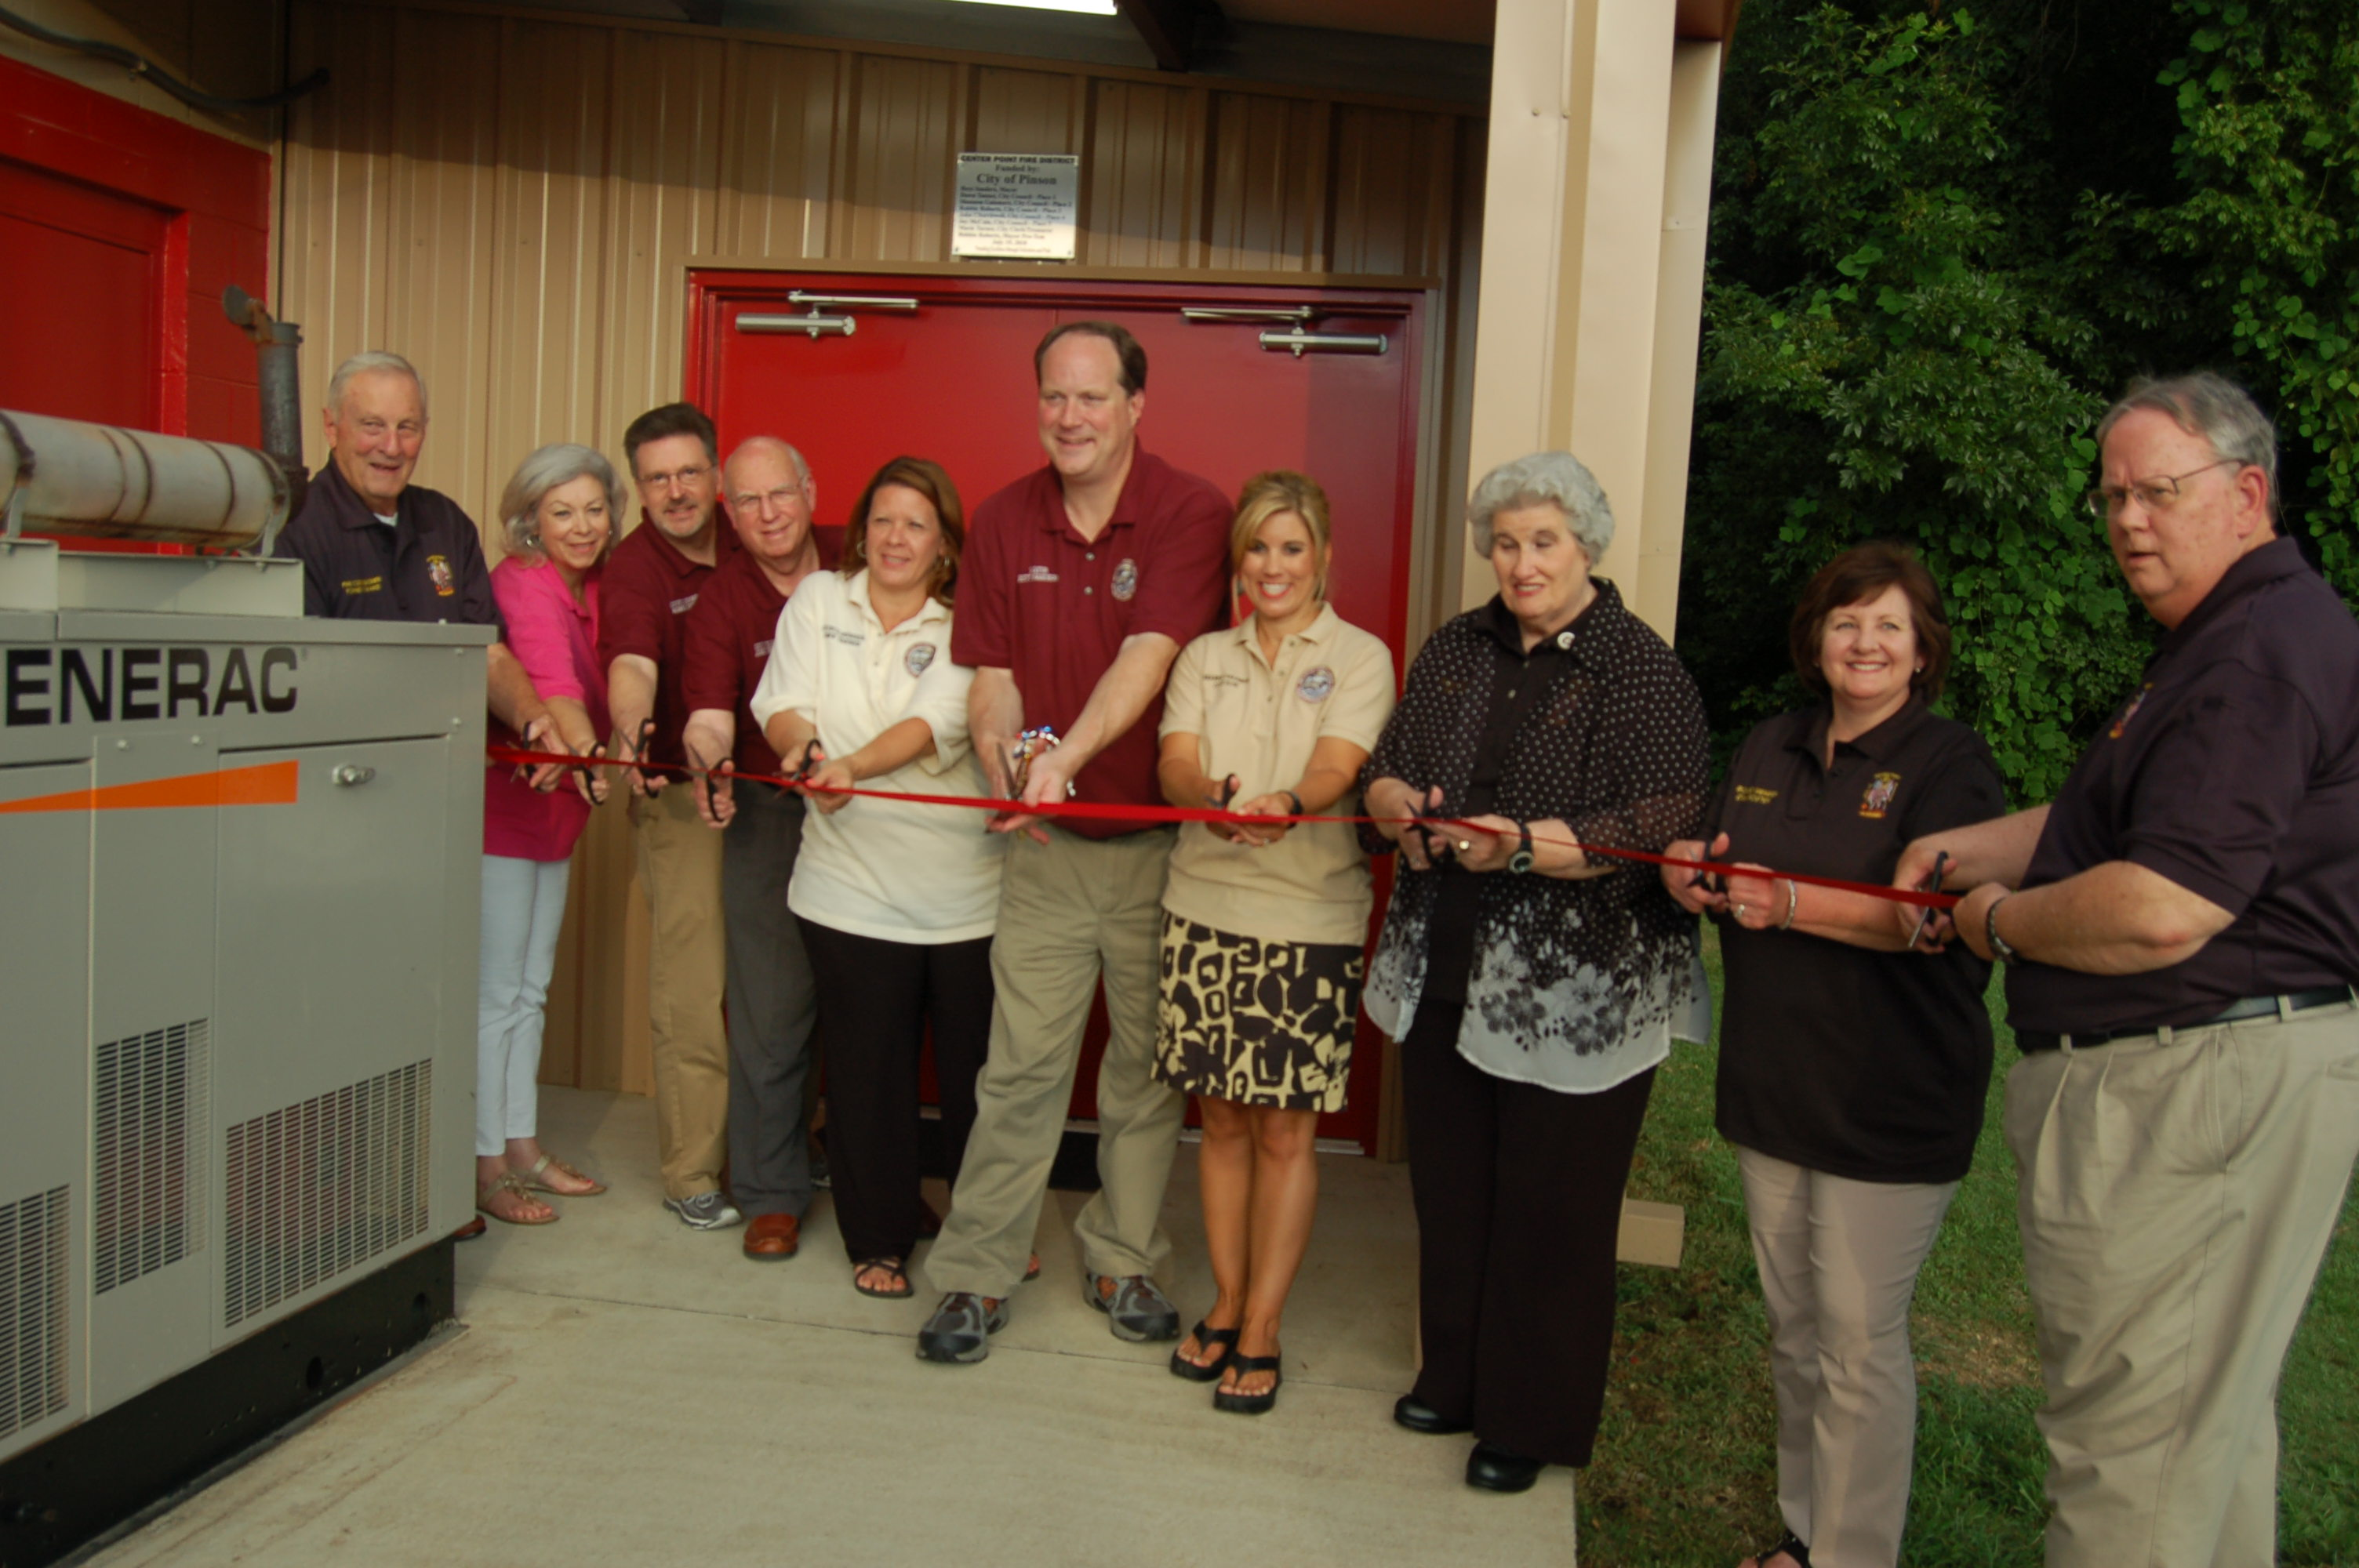 Members of the Pinson City Council about to cut the ribbon for a new clean room at Center Point Fire District 2. Photo by Nathan Prewett.